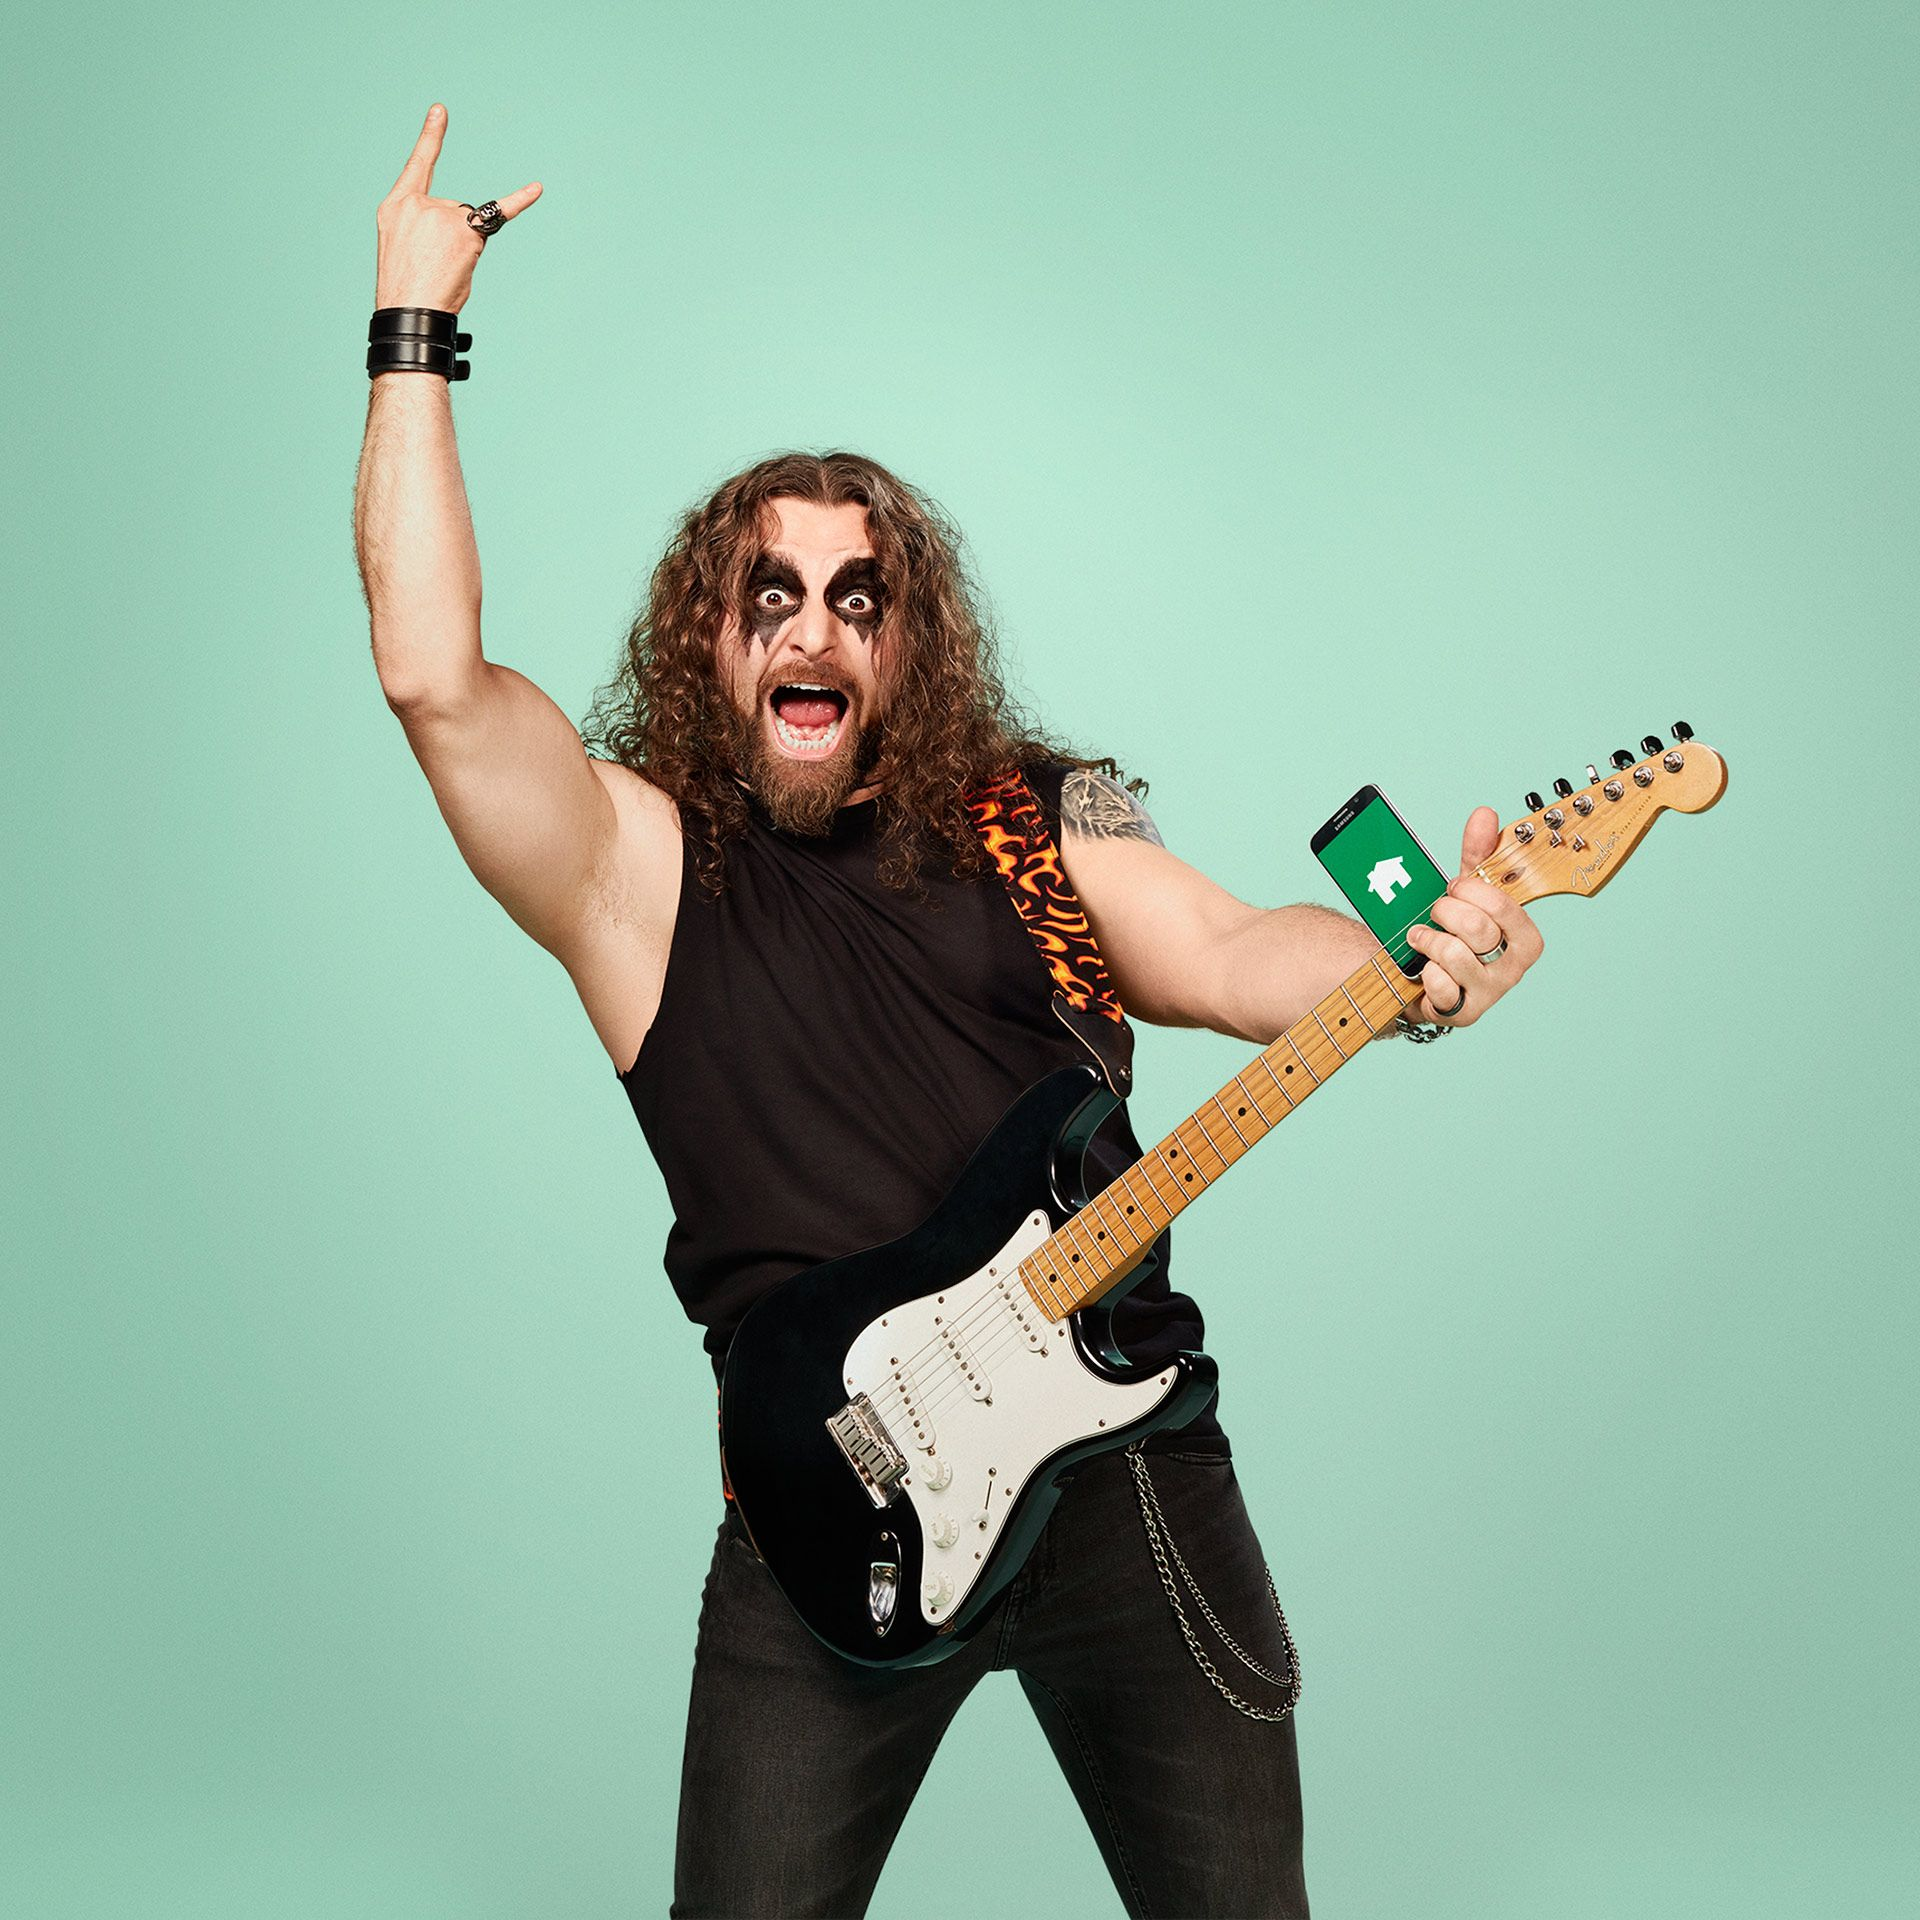 hard metal guy holding guitar with phone tongue sticking out by Jocelyn Michel for Desjardins Assurance with Lg2